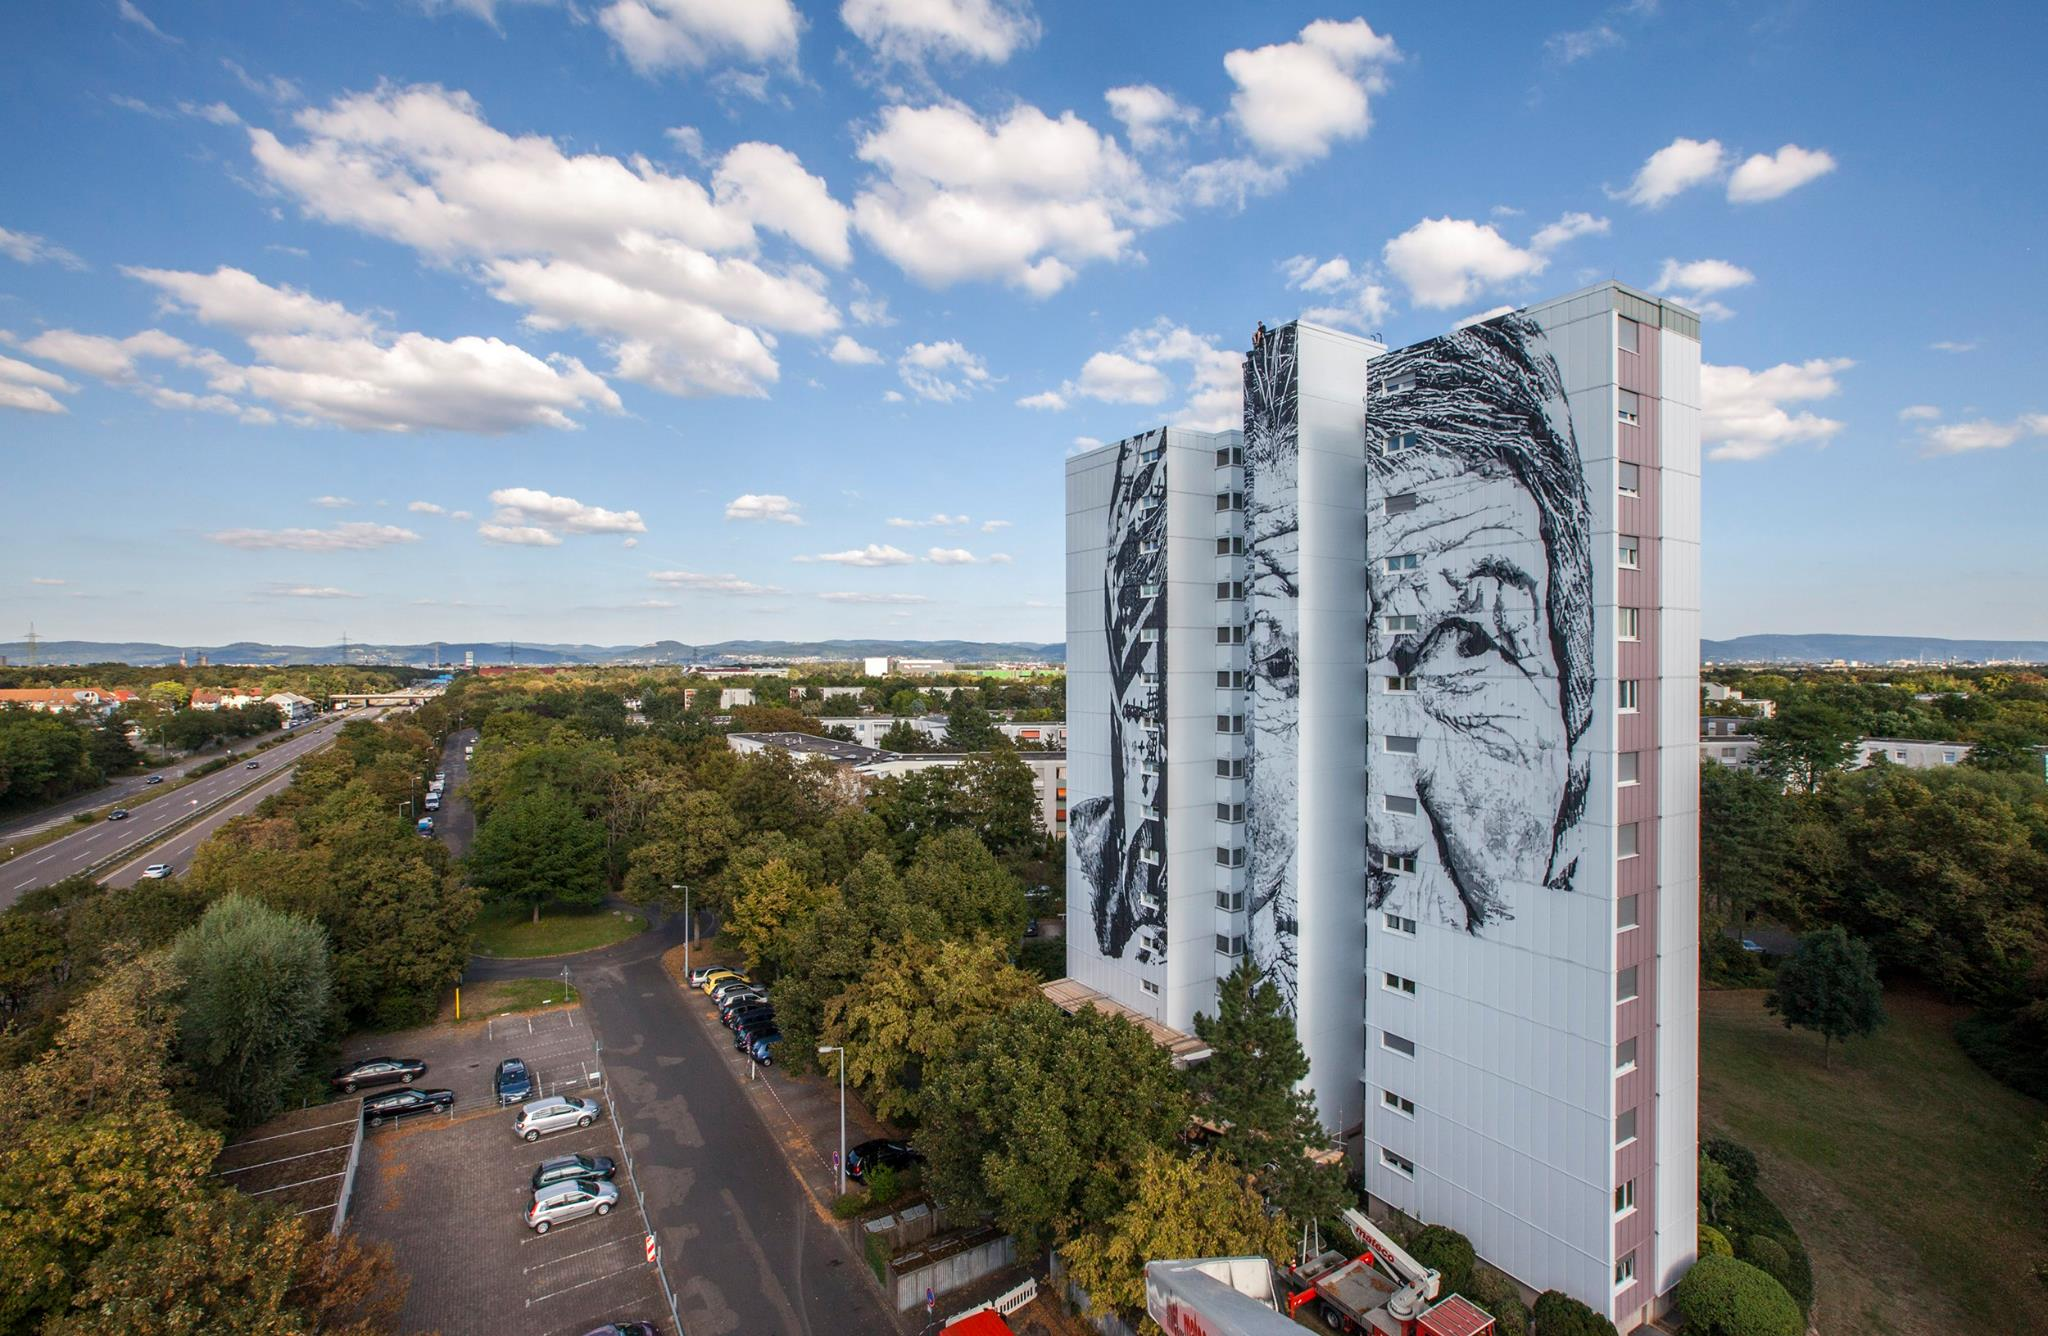 Mannheim Germany Quotvera Quot By Ecb In Mannheim Germany Streetartnews